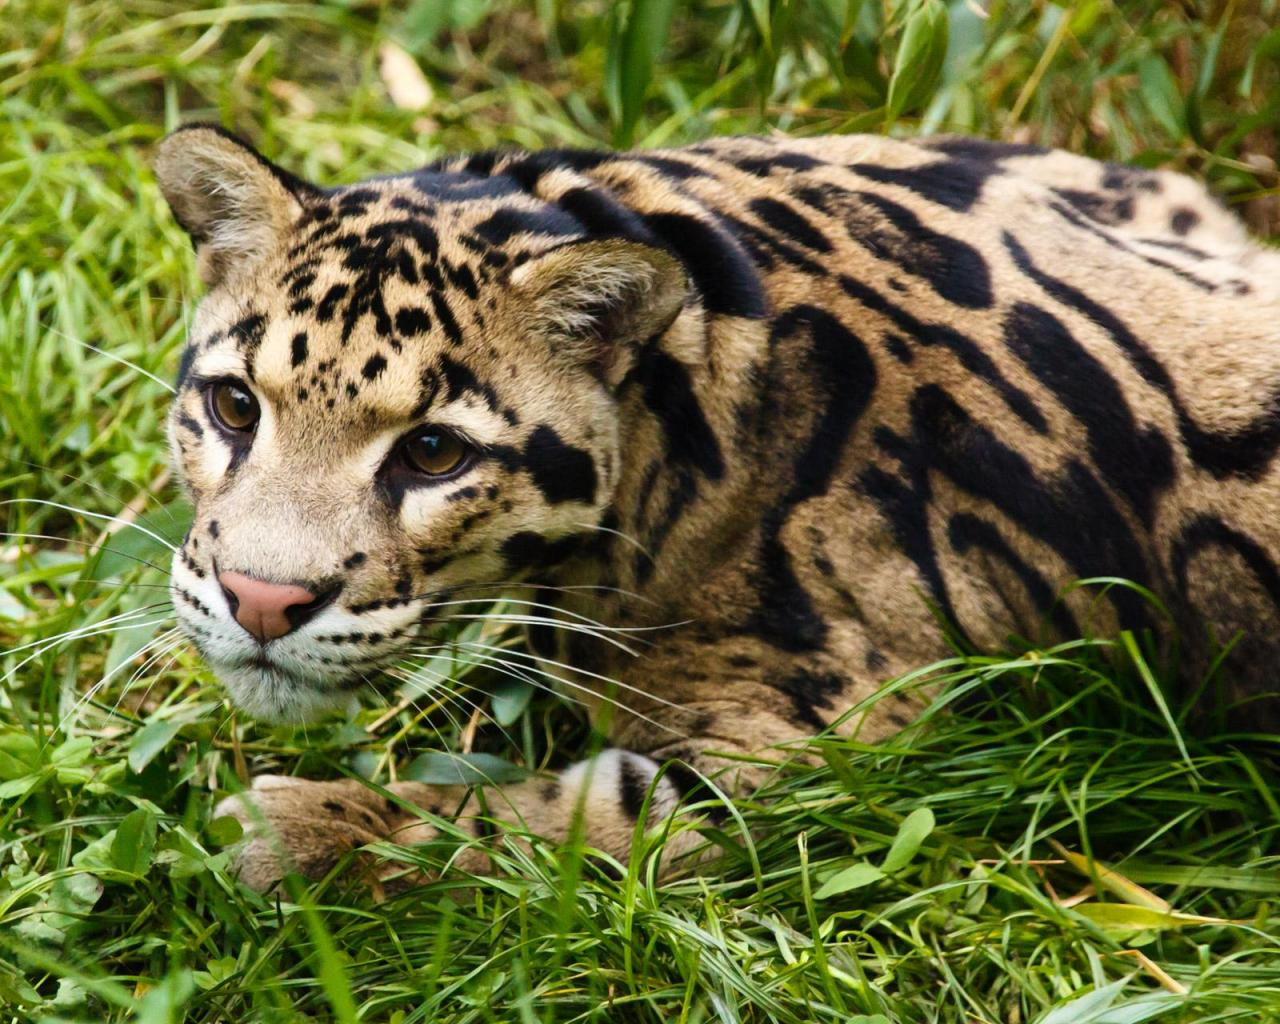 CLOUDED LEOPARD photos   wallpapers the fun bank 1280x1024